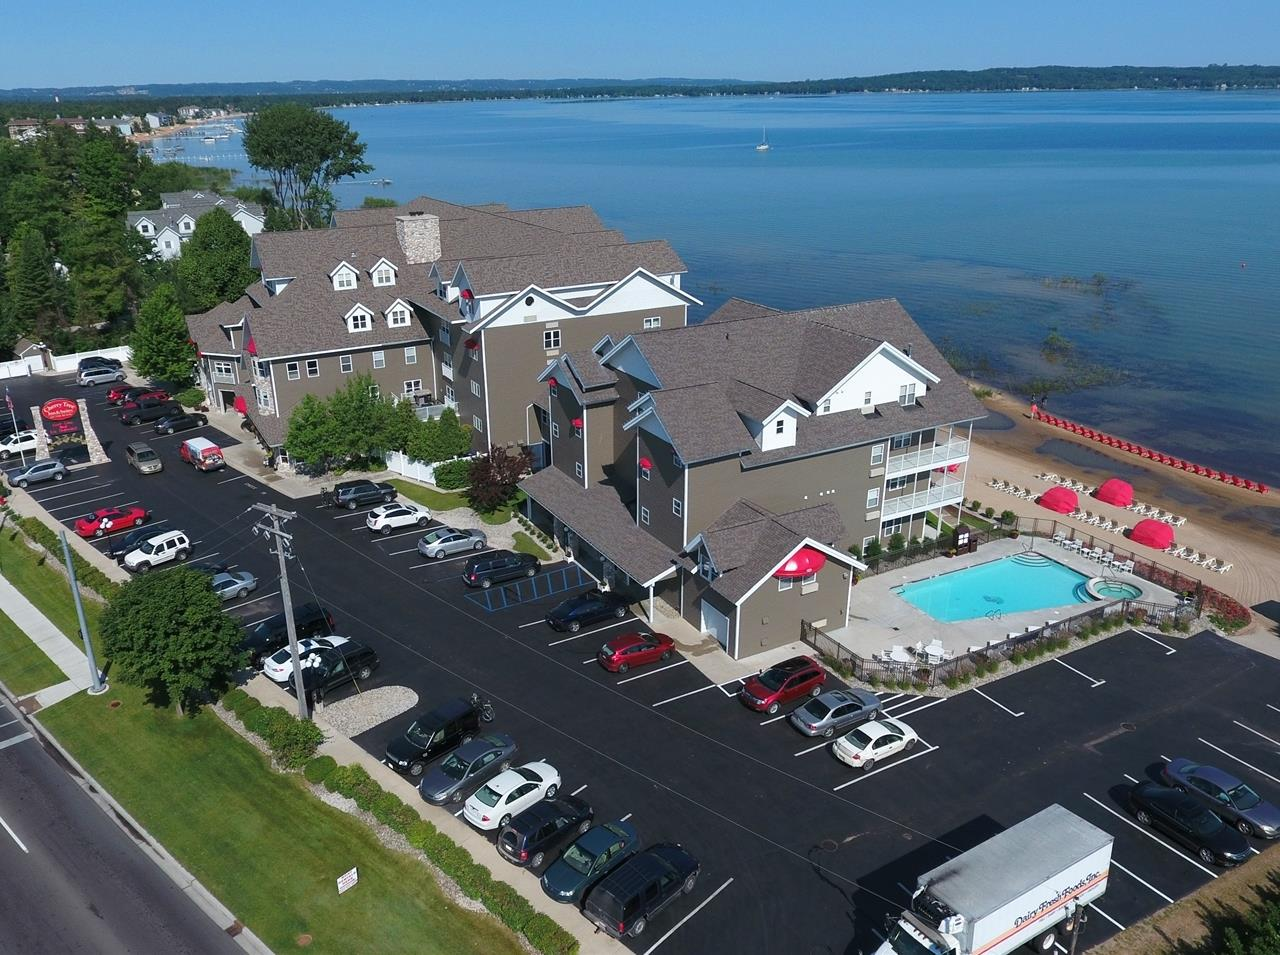 Aerial View of Cherry Tree Inn